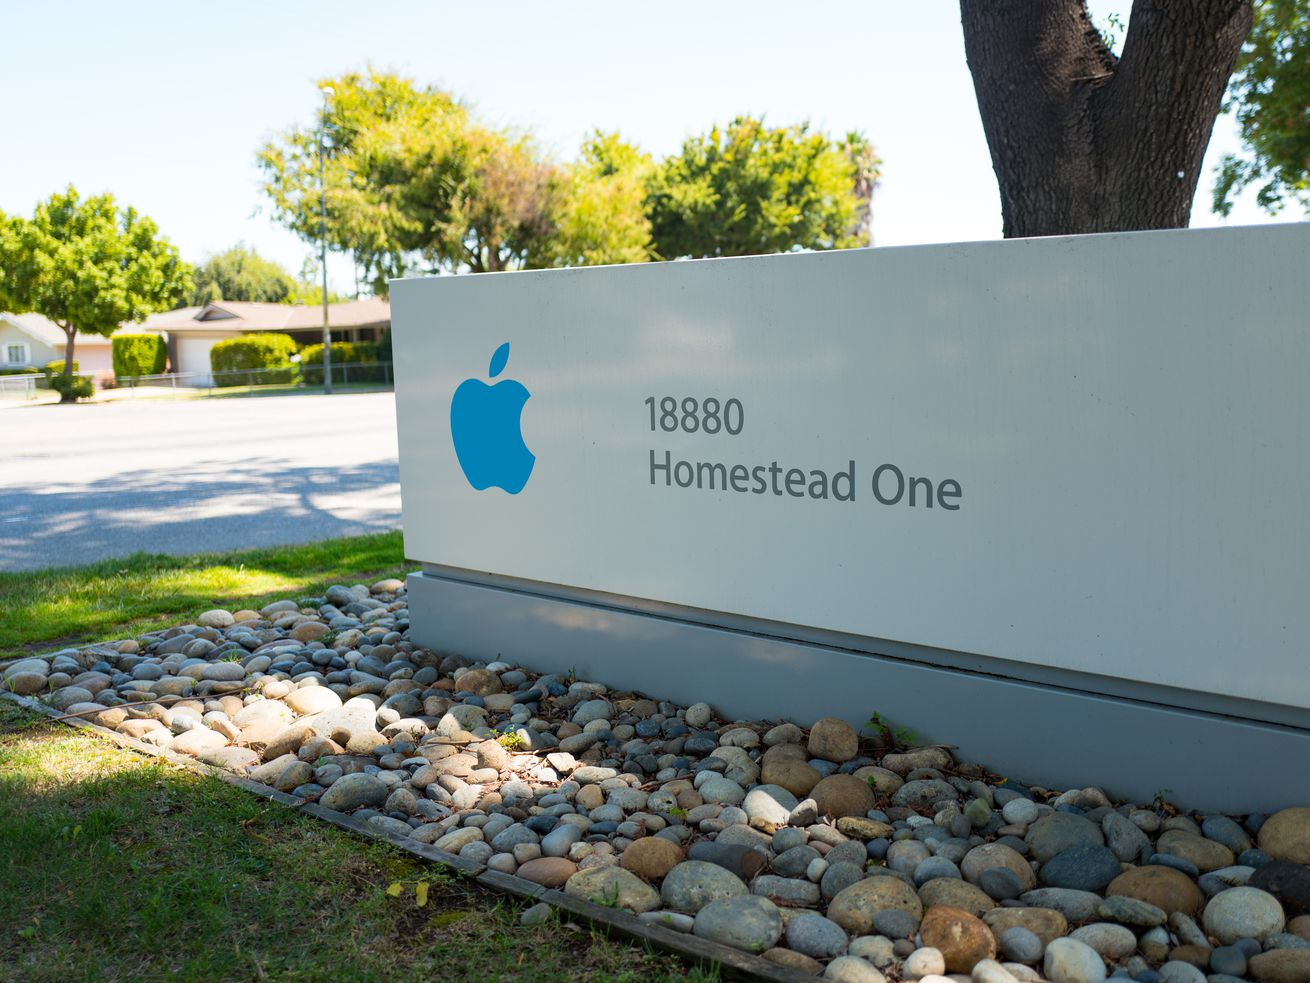 A sign outside the Apple building on Homestead One.